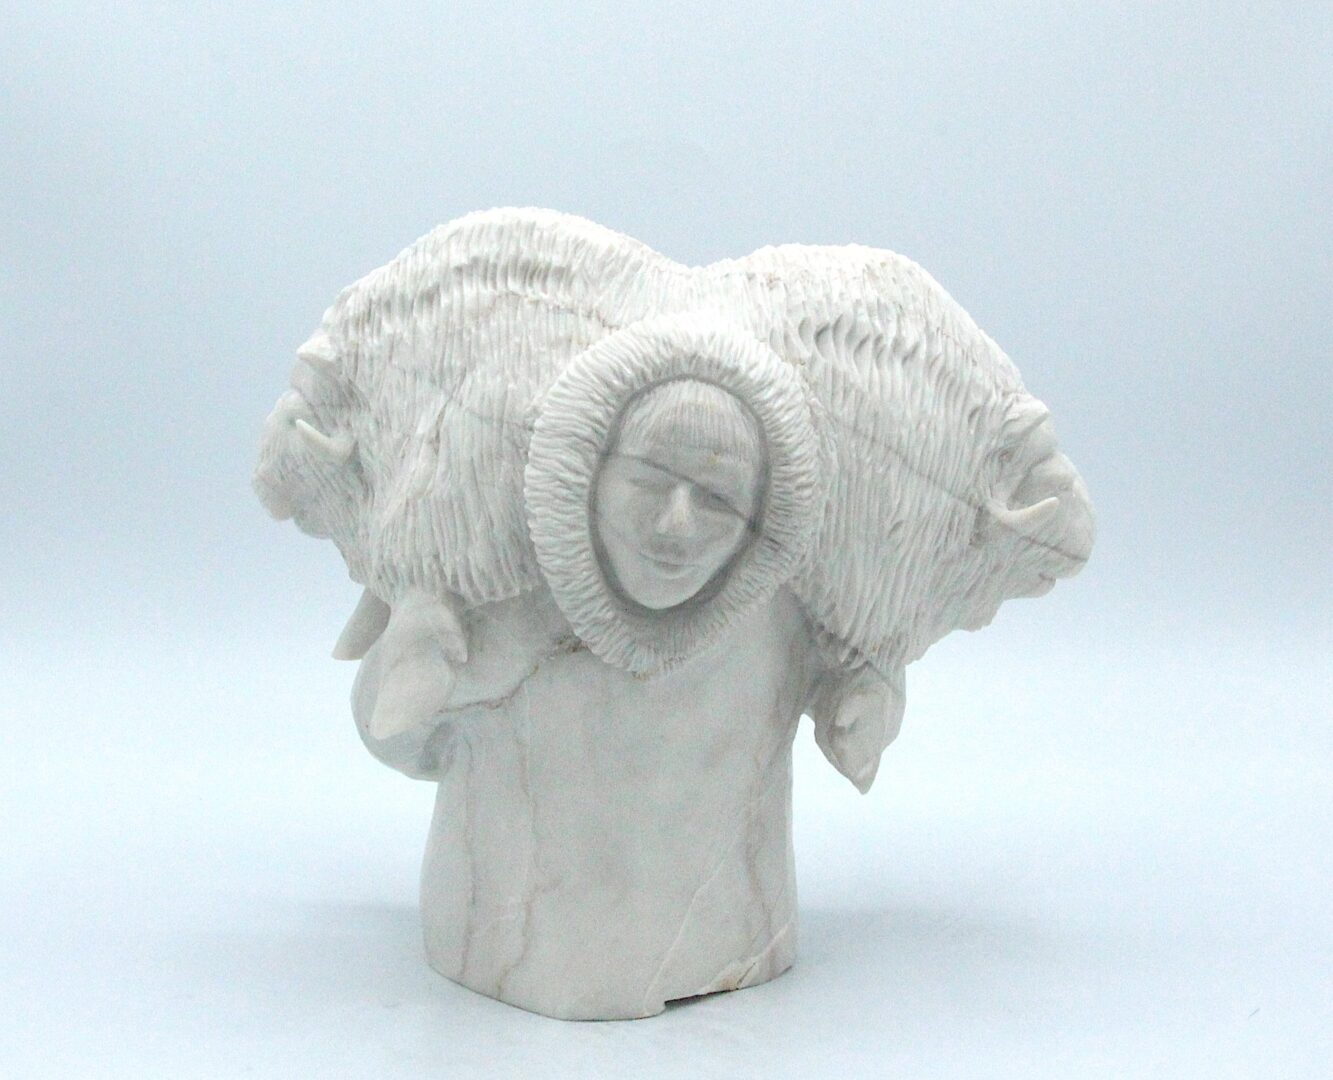 hunter inuit art sculpture in marble